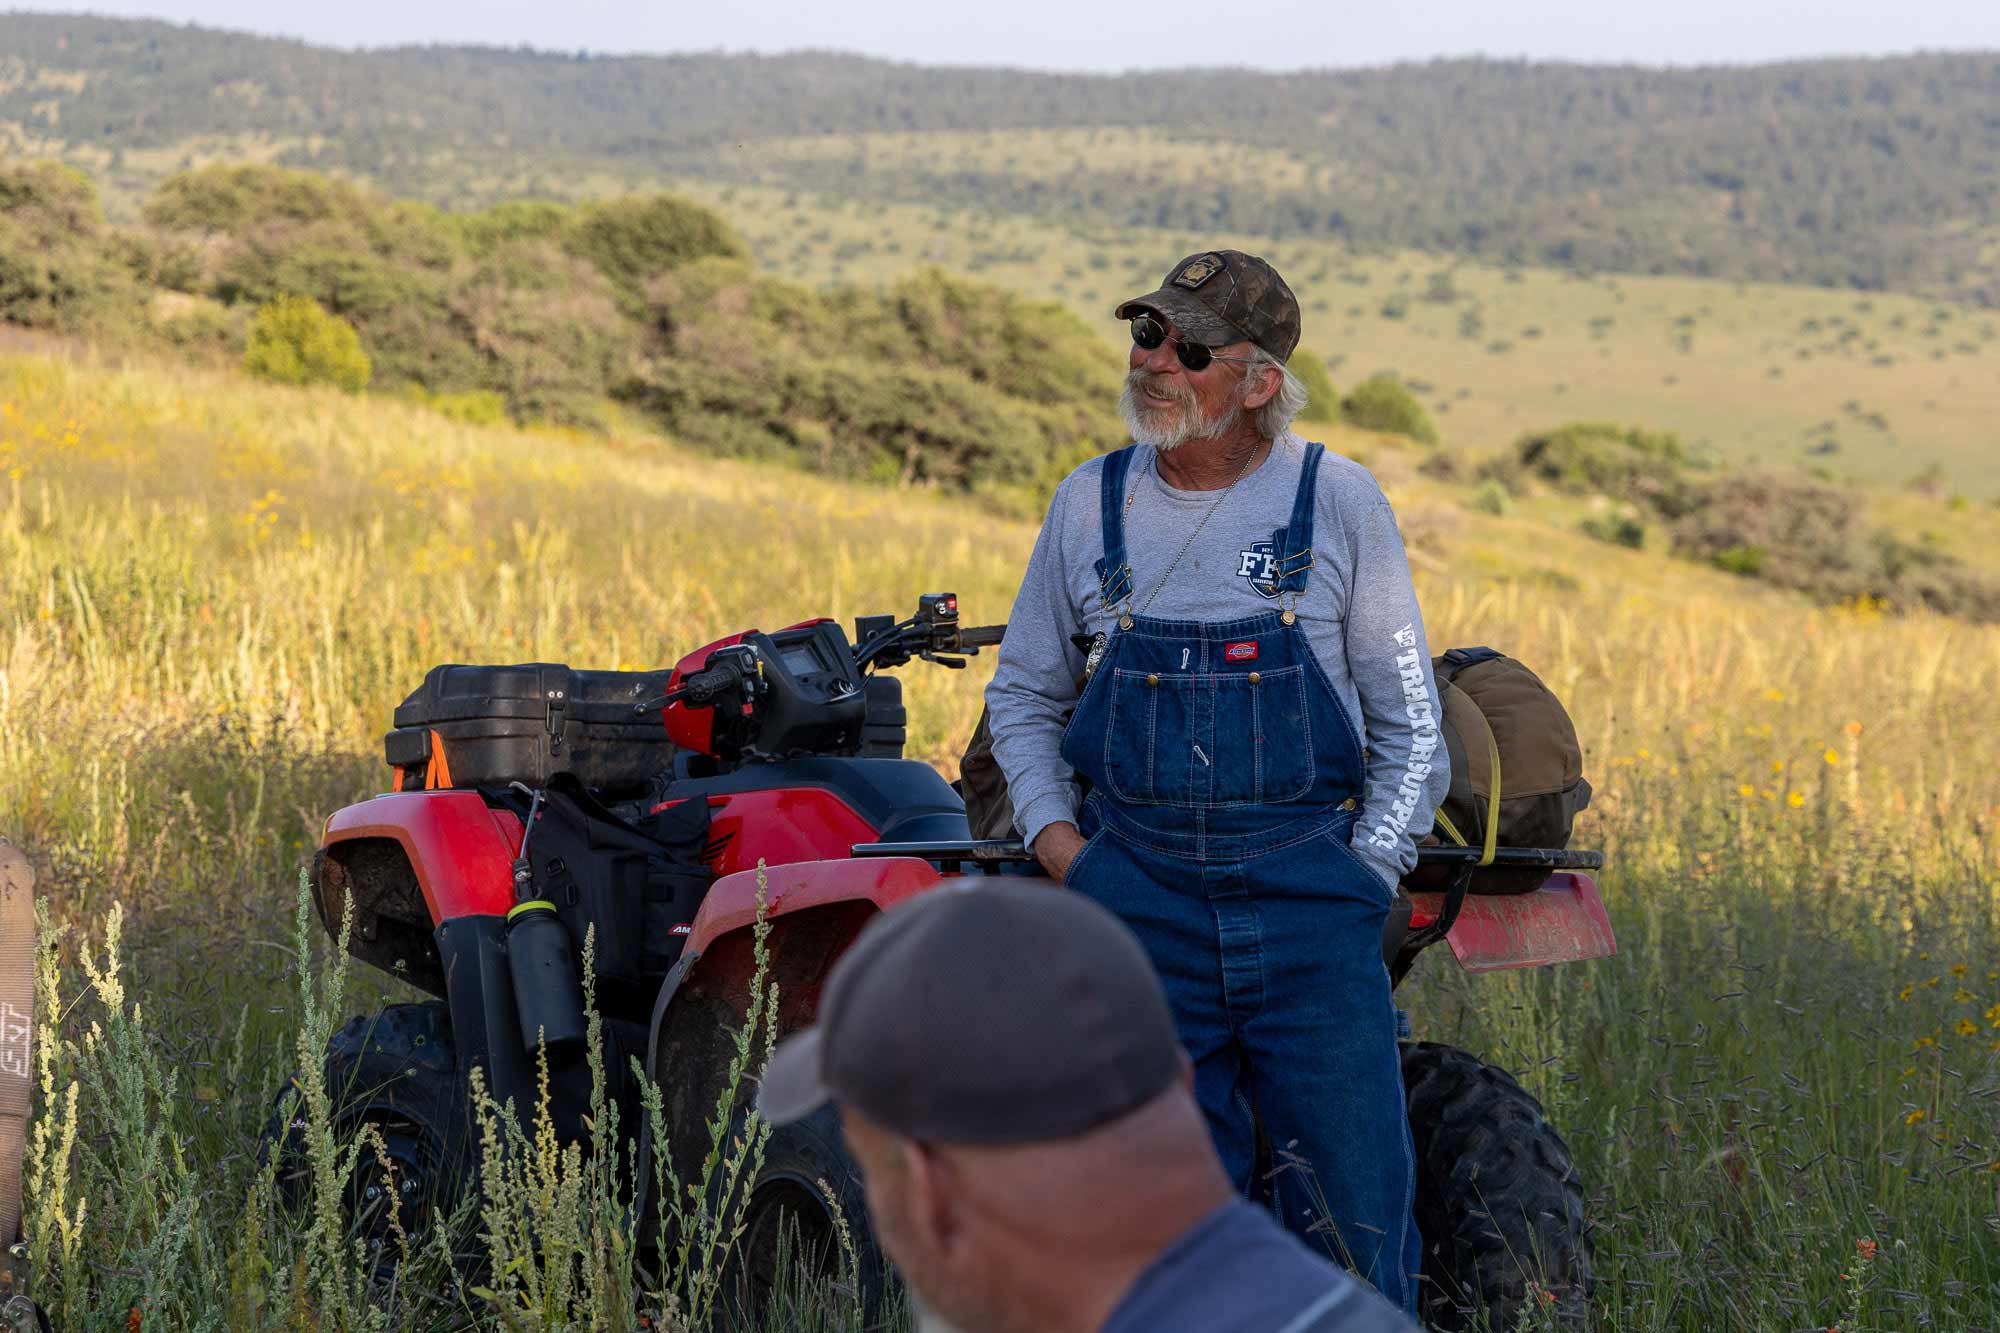 Preston Bates, owner of N Bar Ranch, wears his 30 years of solitude in the Gila National Forest with a quiet pride.